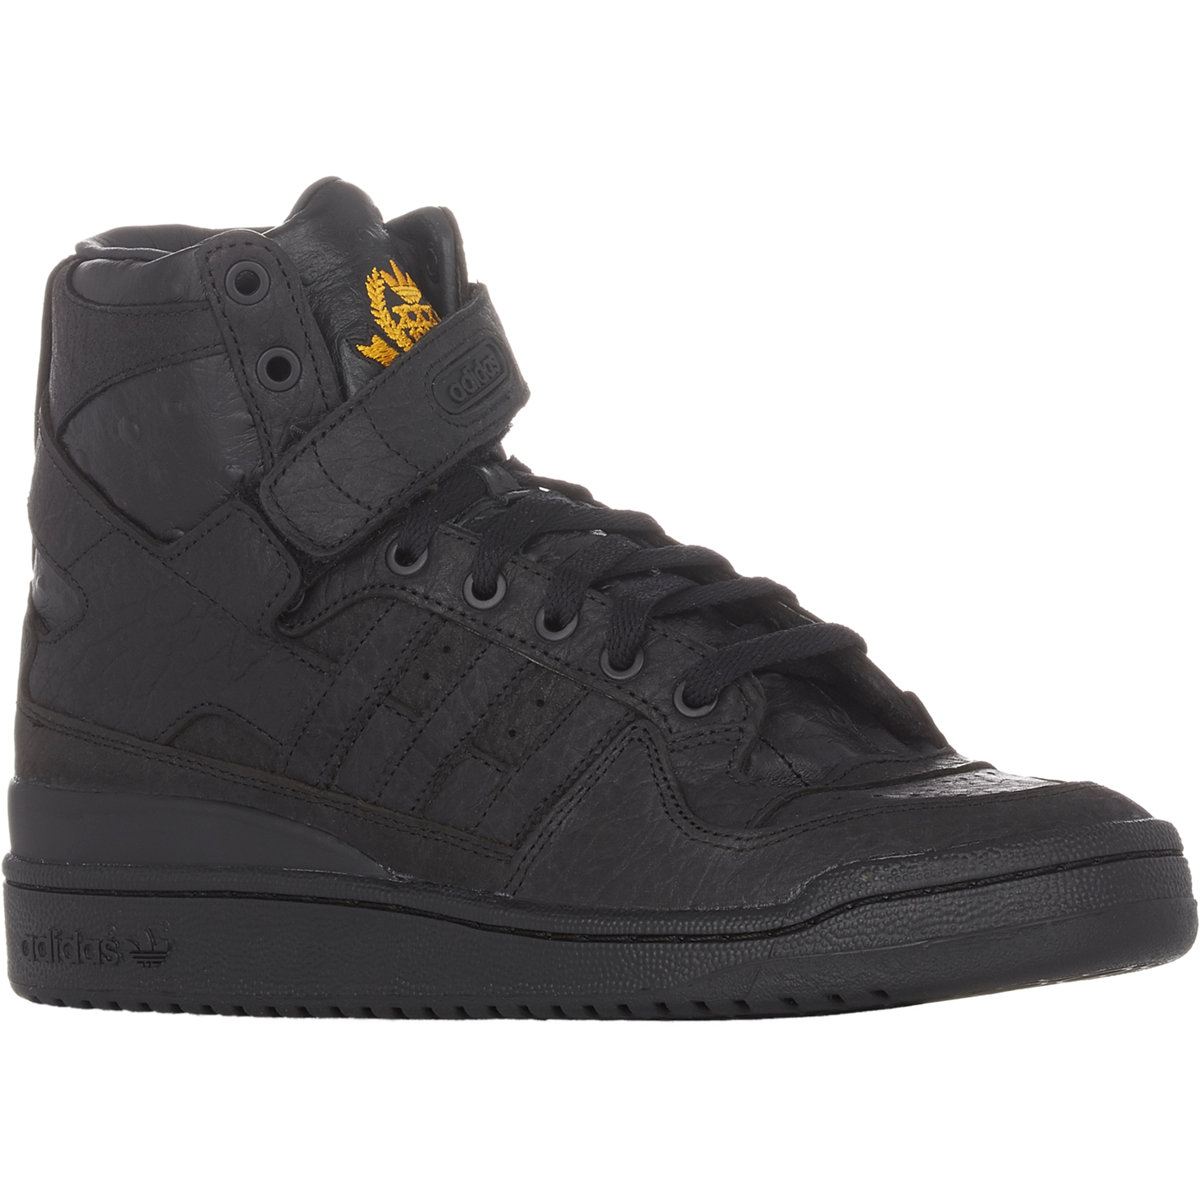 457262f9f42 coupon code adidas originals mid black white campus vulc shoes 581915 00e61  ebbf8  sweden lyst adidas forum hi og sneakers in black for men 4afde c7fd8